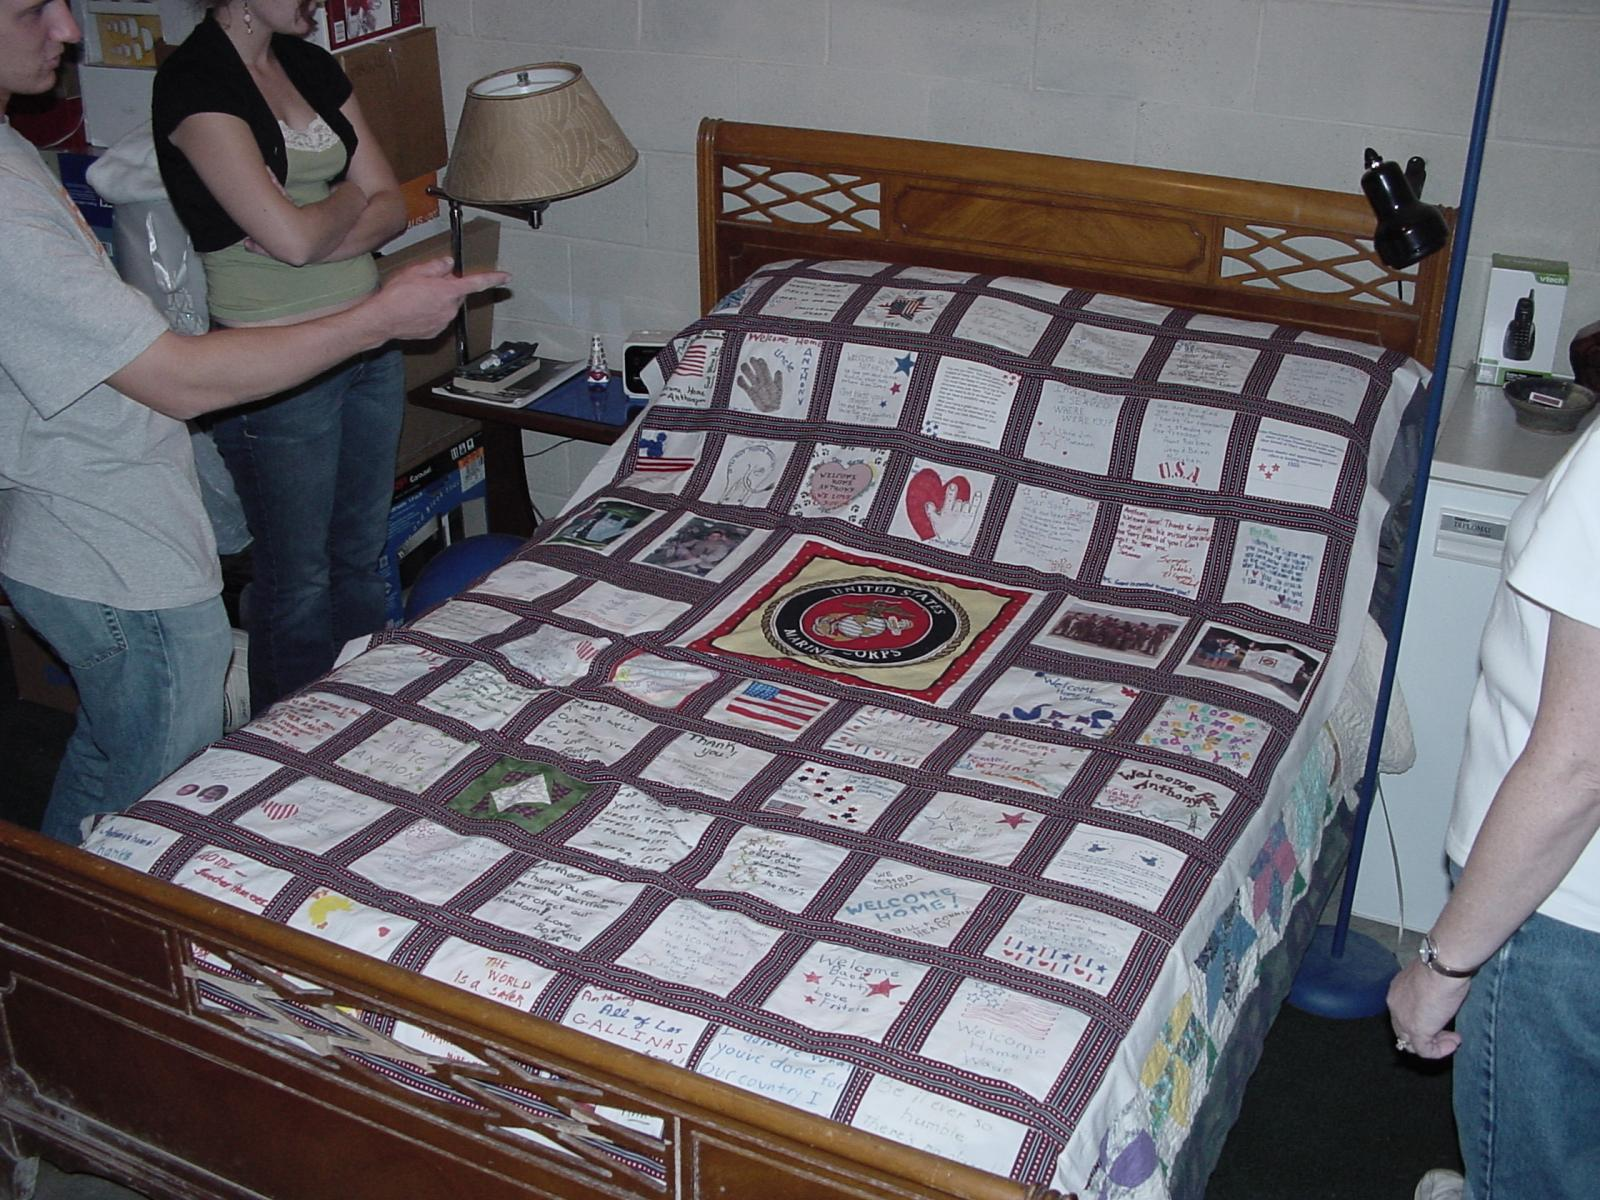 Our son's welcome home quilt from Iraq